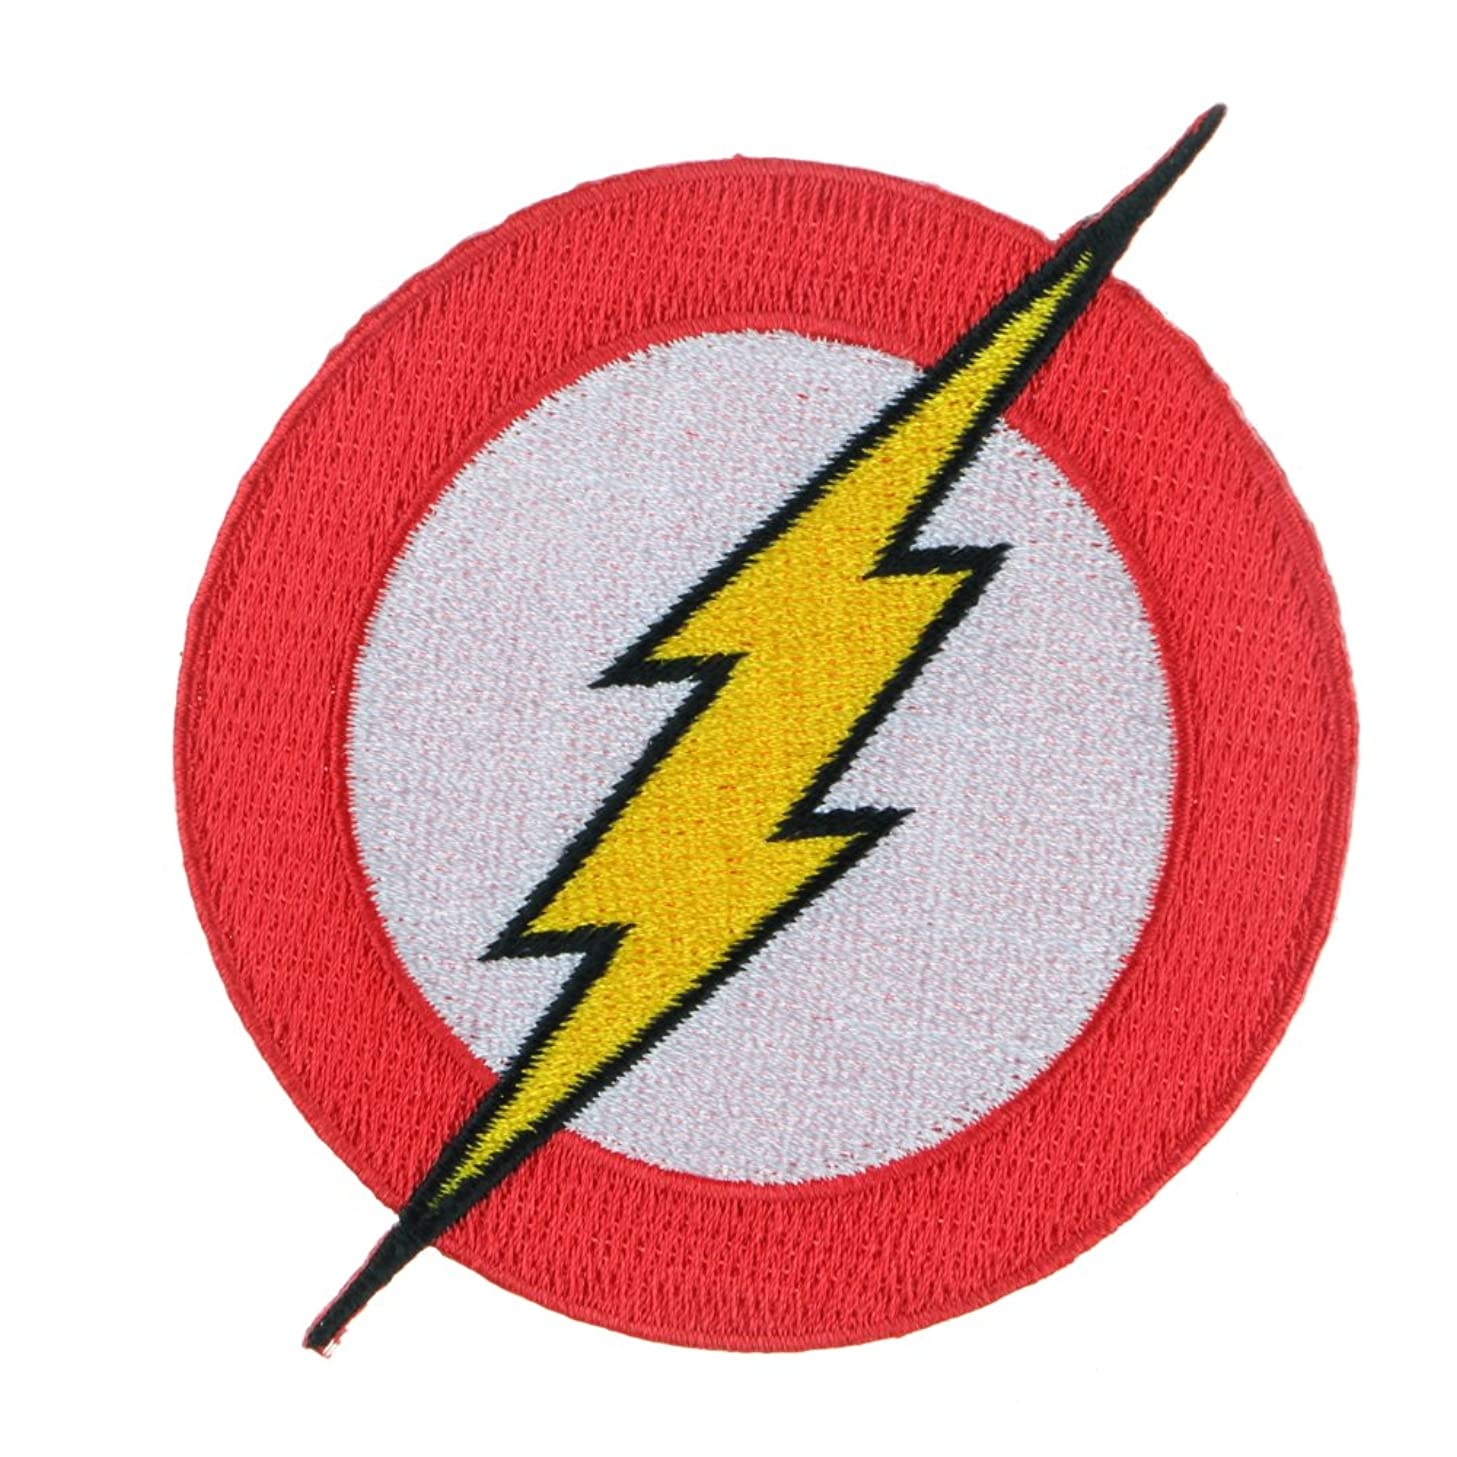 Iron Sew on Applique Patch : The Flash (Red)